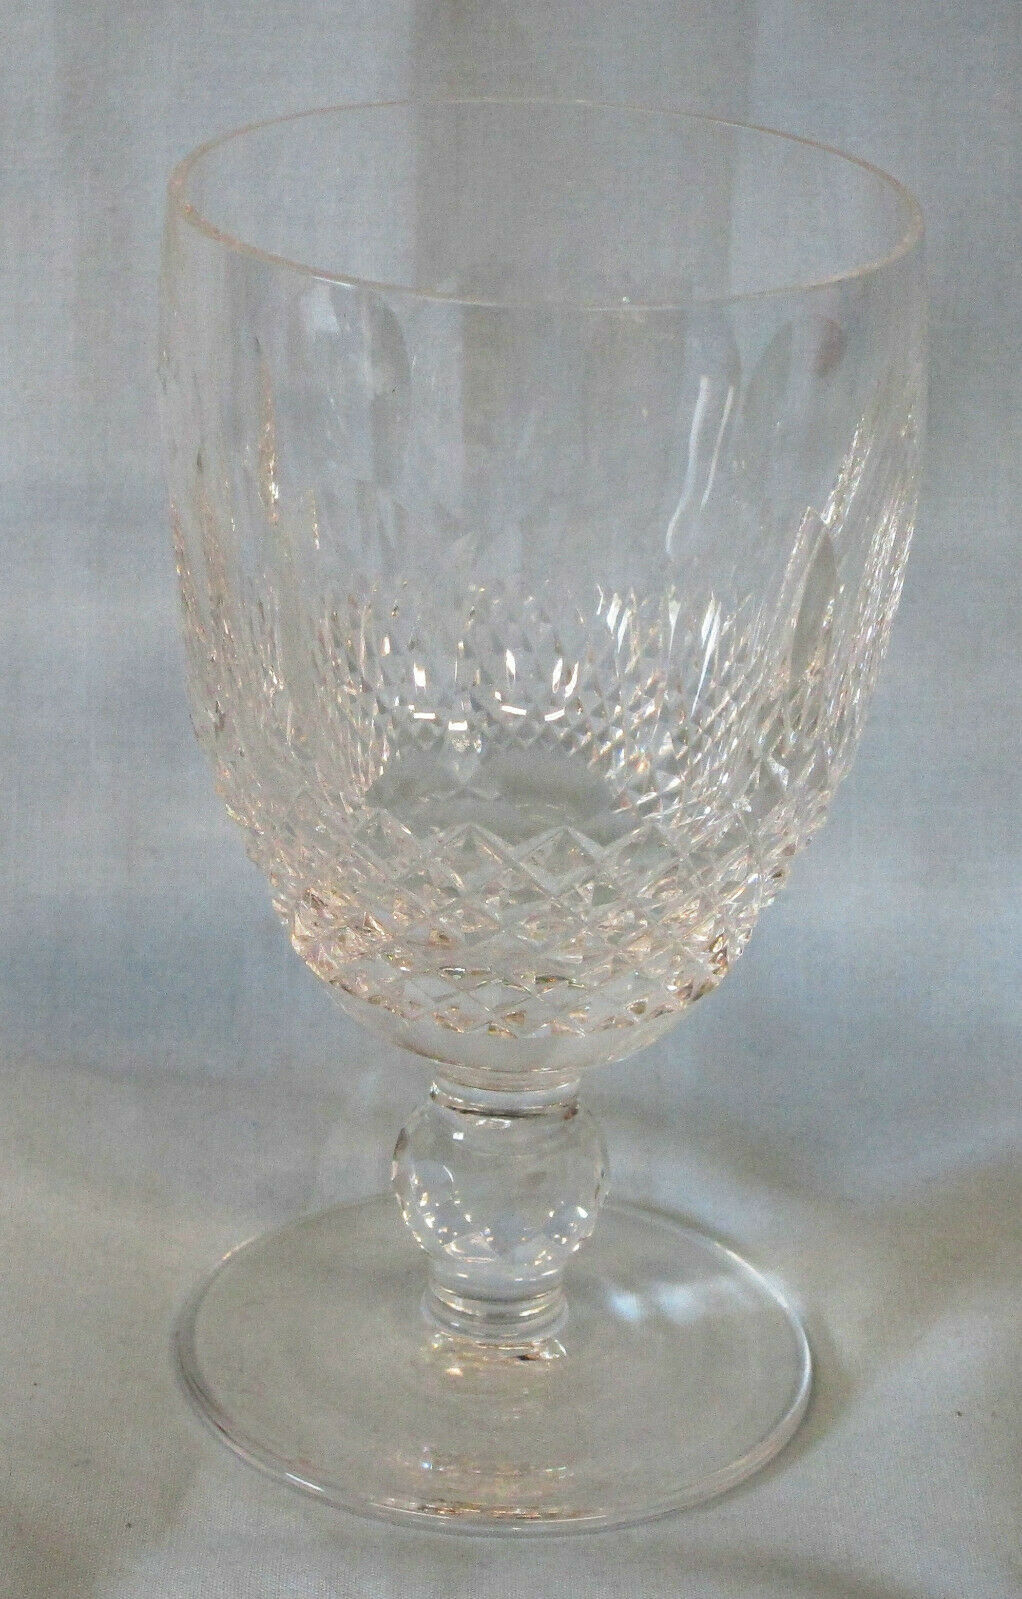 Primary image for Waterford Colleen Short Stem Claret Wine Stem Goblet 4 3/4""